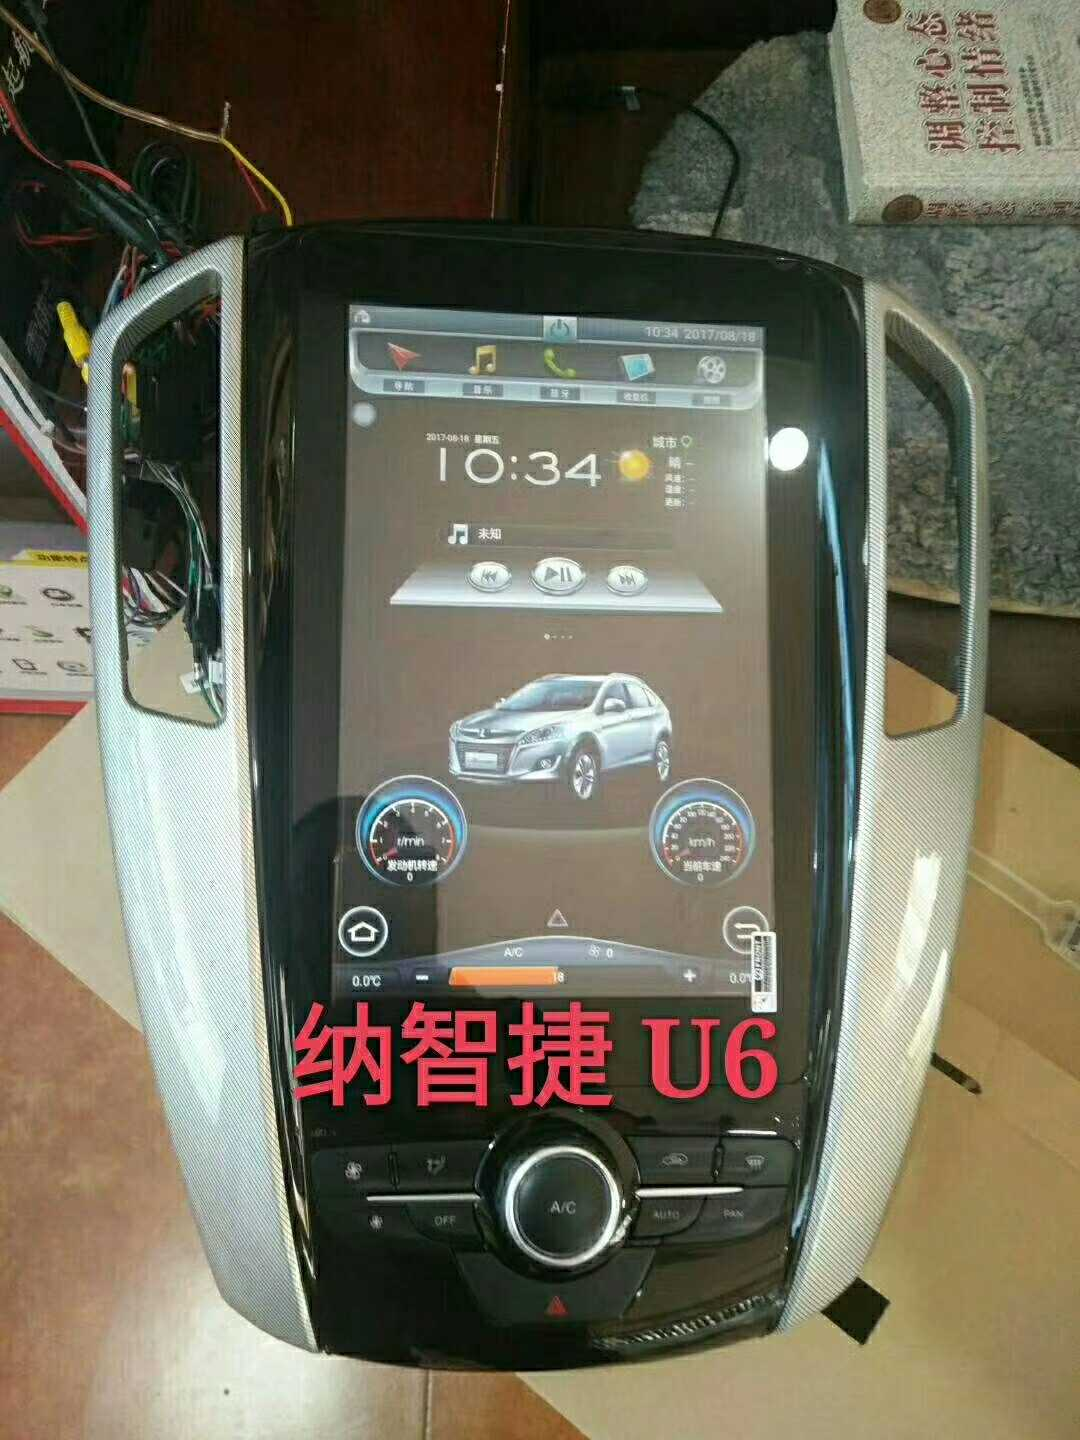 Dongfeng Nazhijie U6 Sharp 3 Special Android Navigation Integrated Machine 13.3 inch large screen vertical navigation